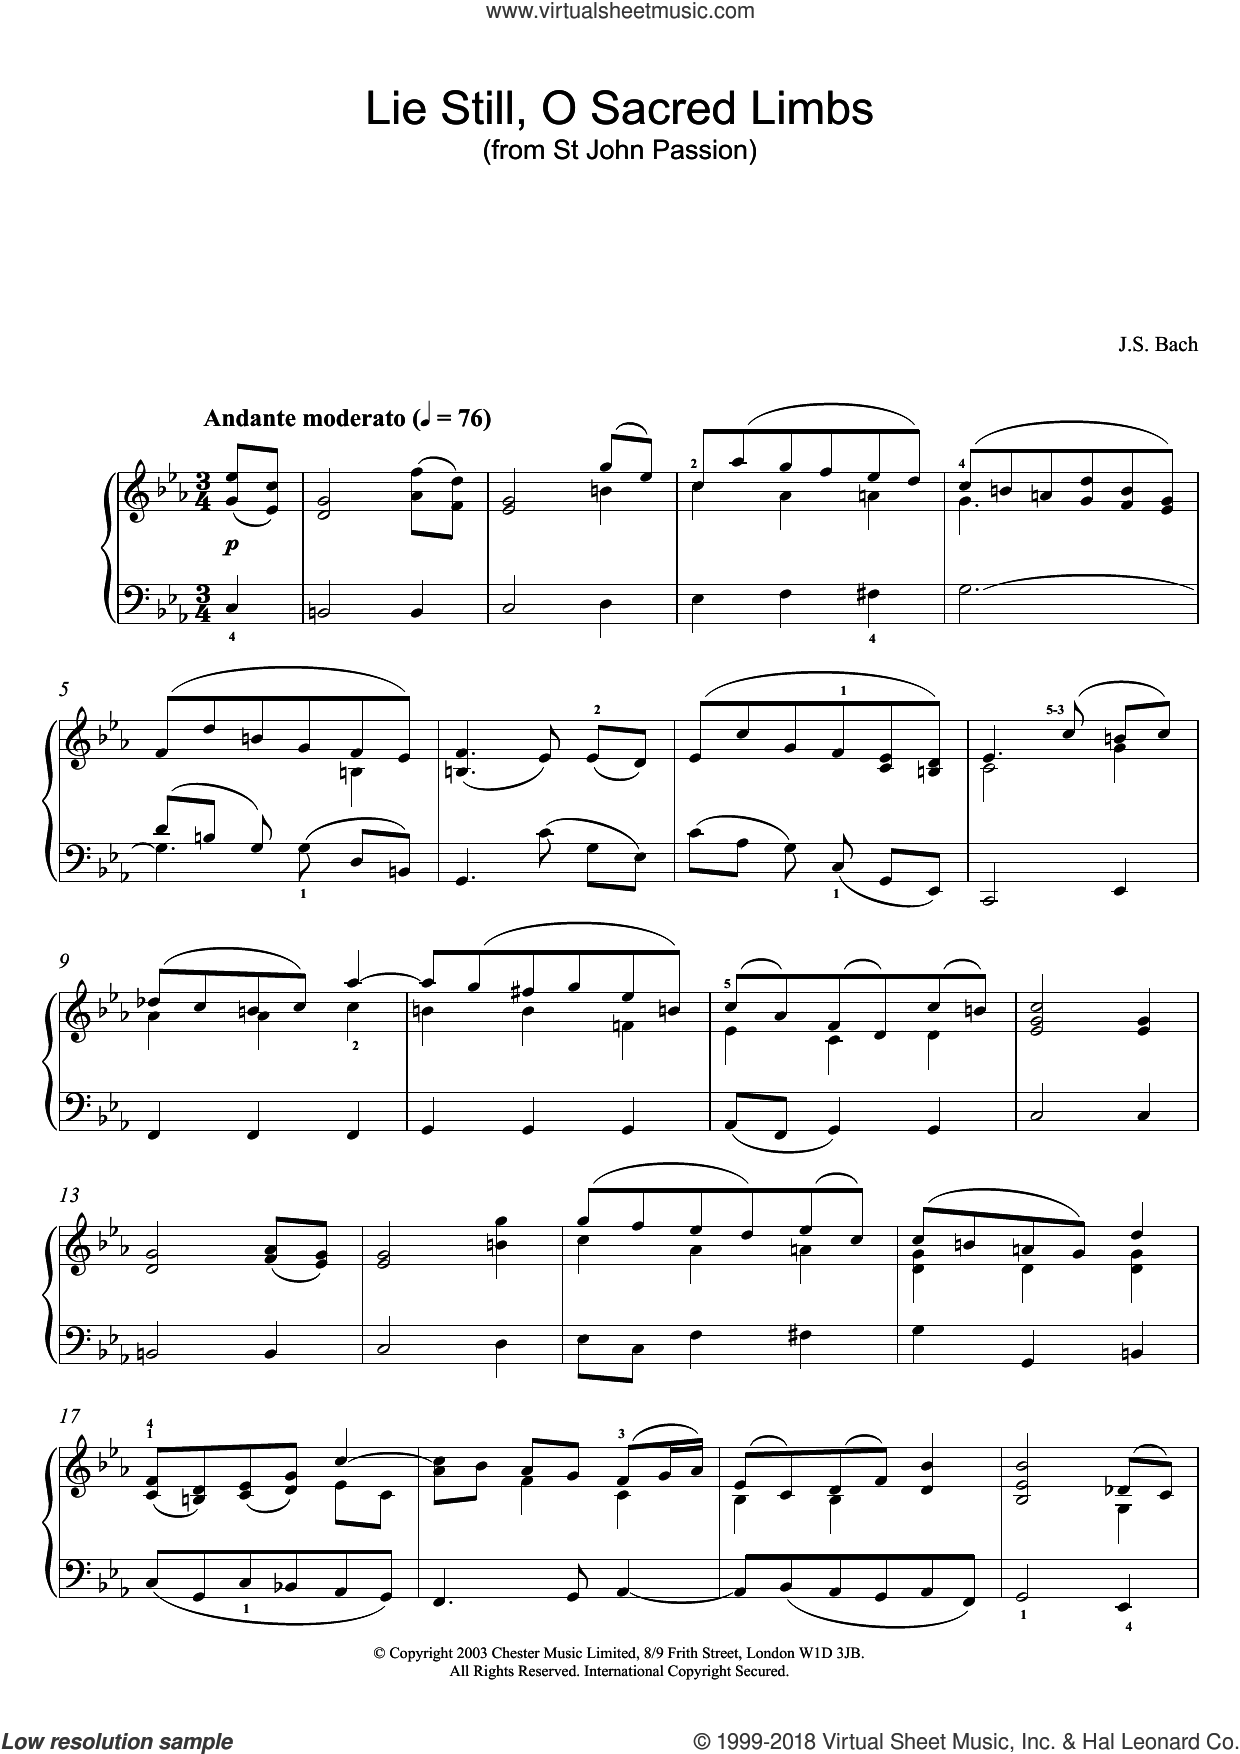 Lie Still, O Sacred Limbs (from St John Passion) sheet music for piano solo by Johann Sebastian Bach, classical score, intermediate skill level